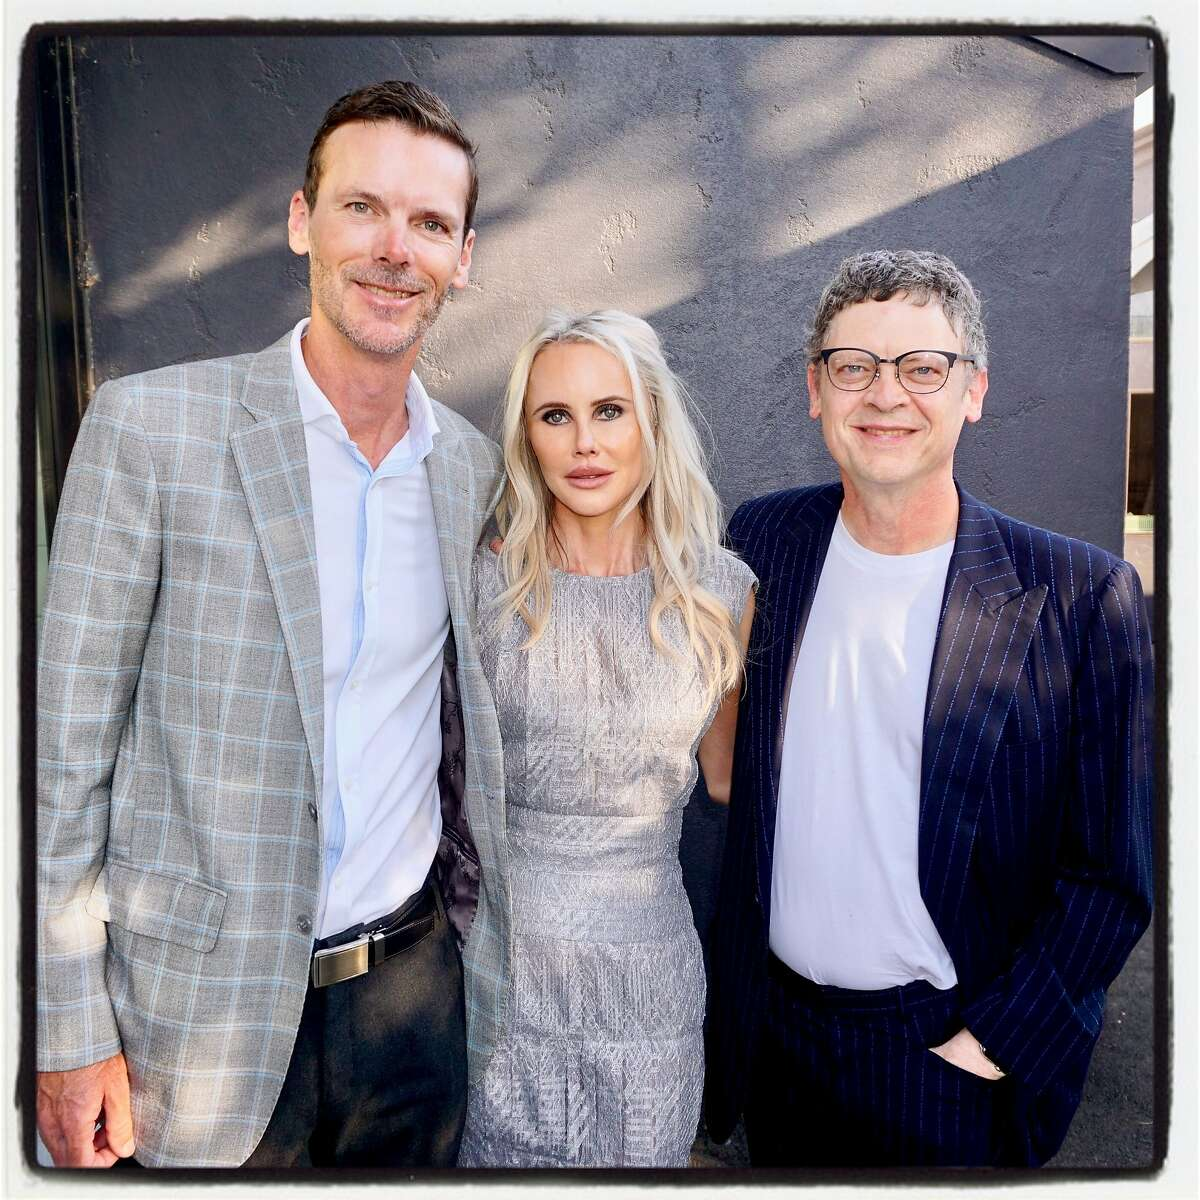 Billy Getty (left) with his wife, Vanessa, and brother Peter Getty at Odette Winery for their Arts+Earth Initiative fundraiser. Sept. 16, 2017.